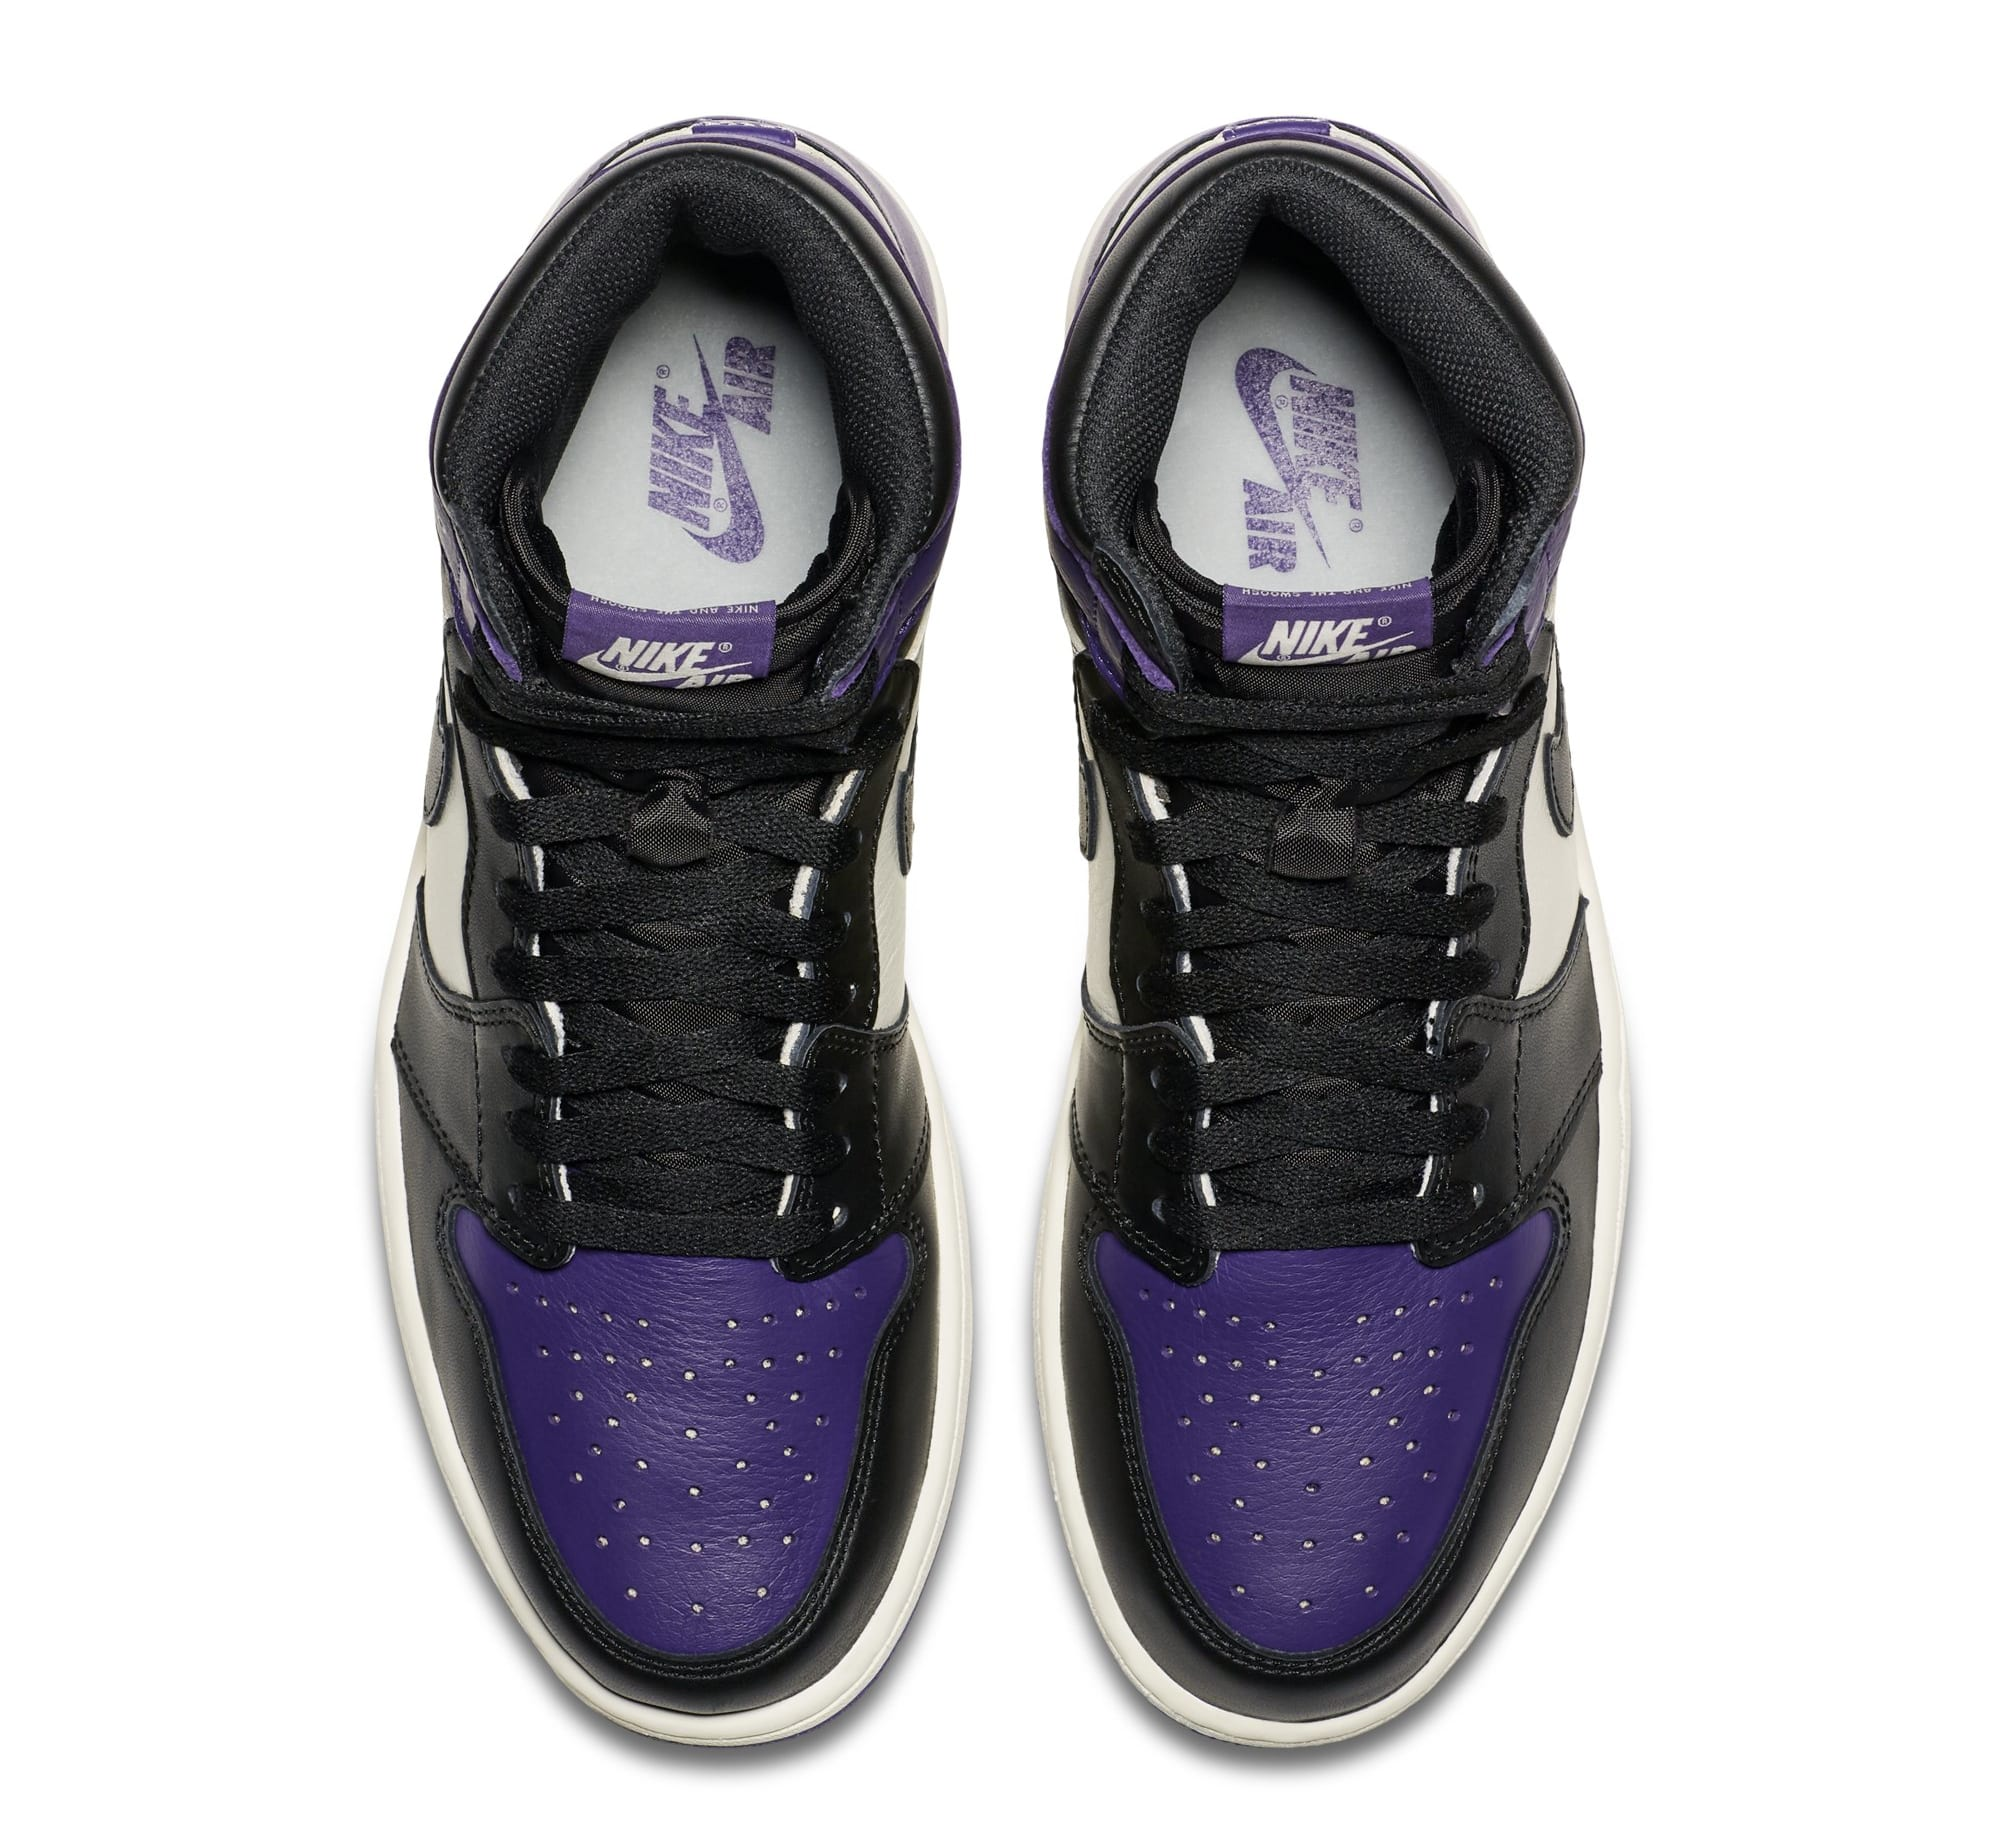 Air Jordan 1 High OG 'Court Purple' 555088-501 (Top)